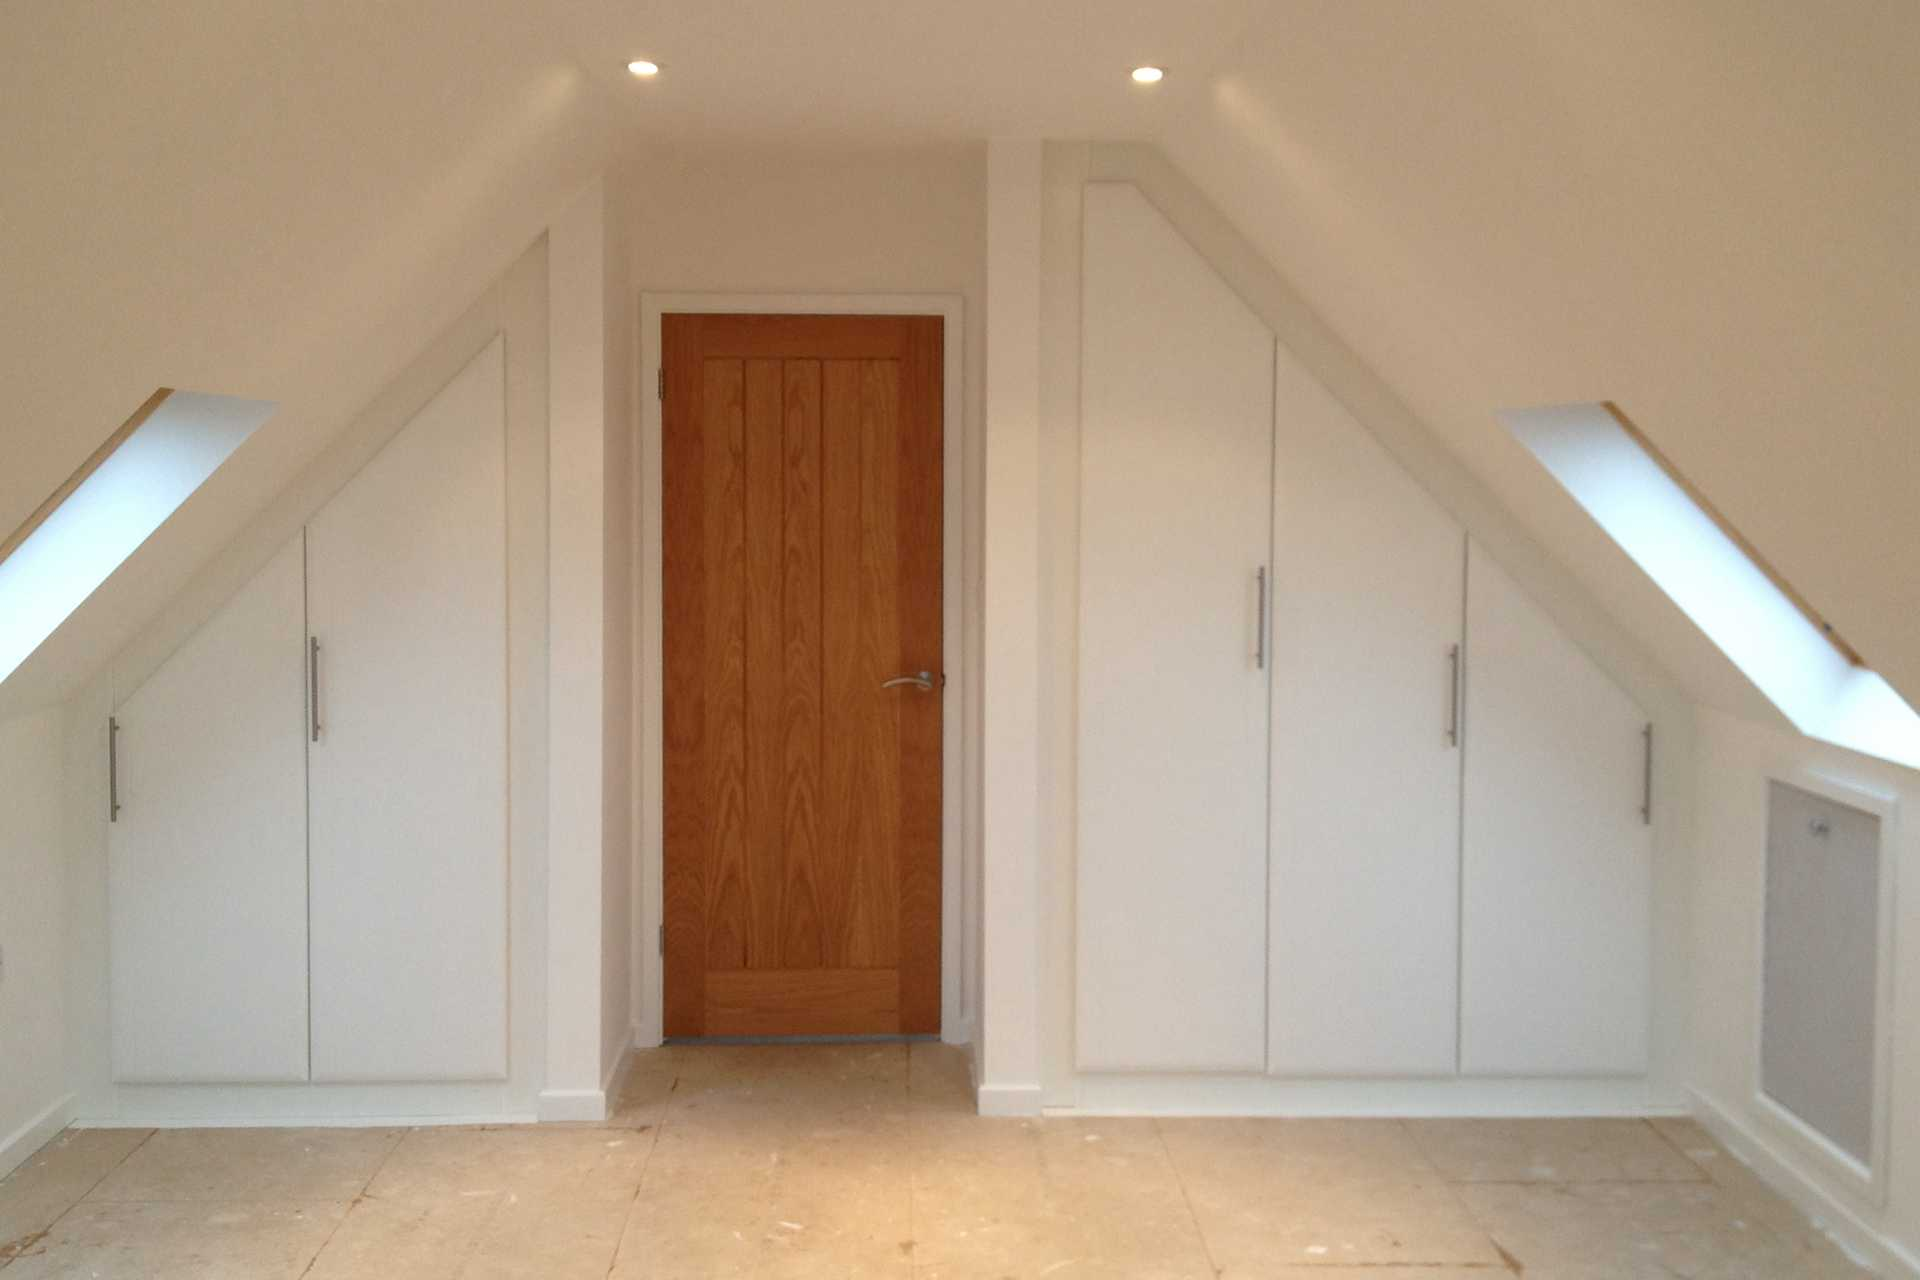 Converted loft spaces through to built in under-stairs cupboards